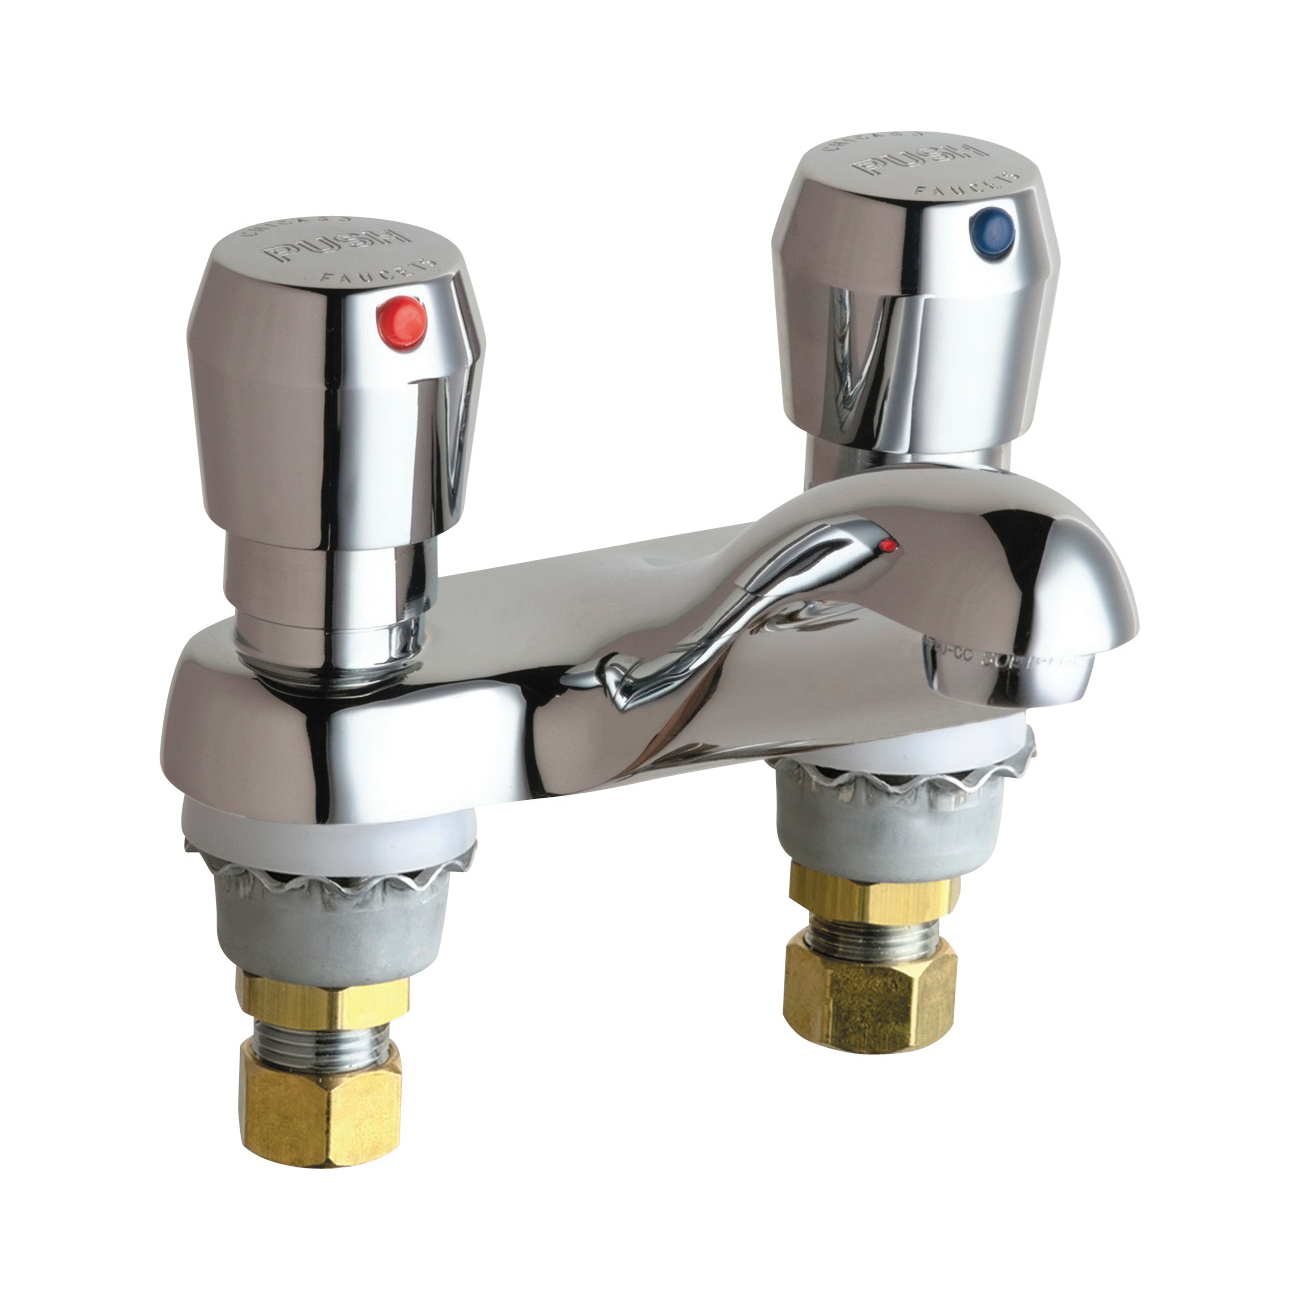 Chicago Faucet® 802-665ABCP Lavatory Sink Faucet, Chrome Plated, 2 Handles, 2.2 gpm